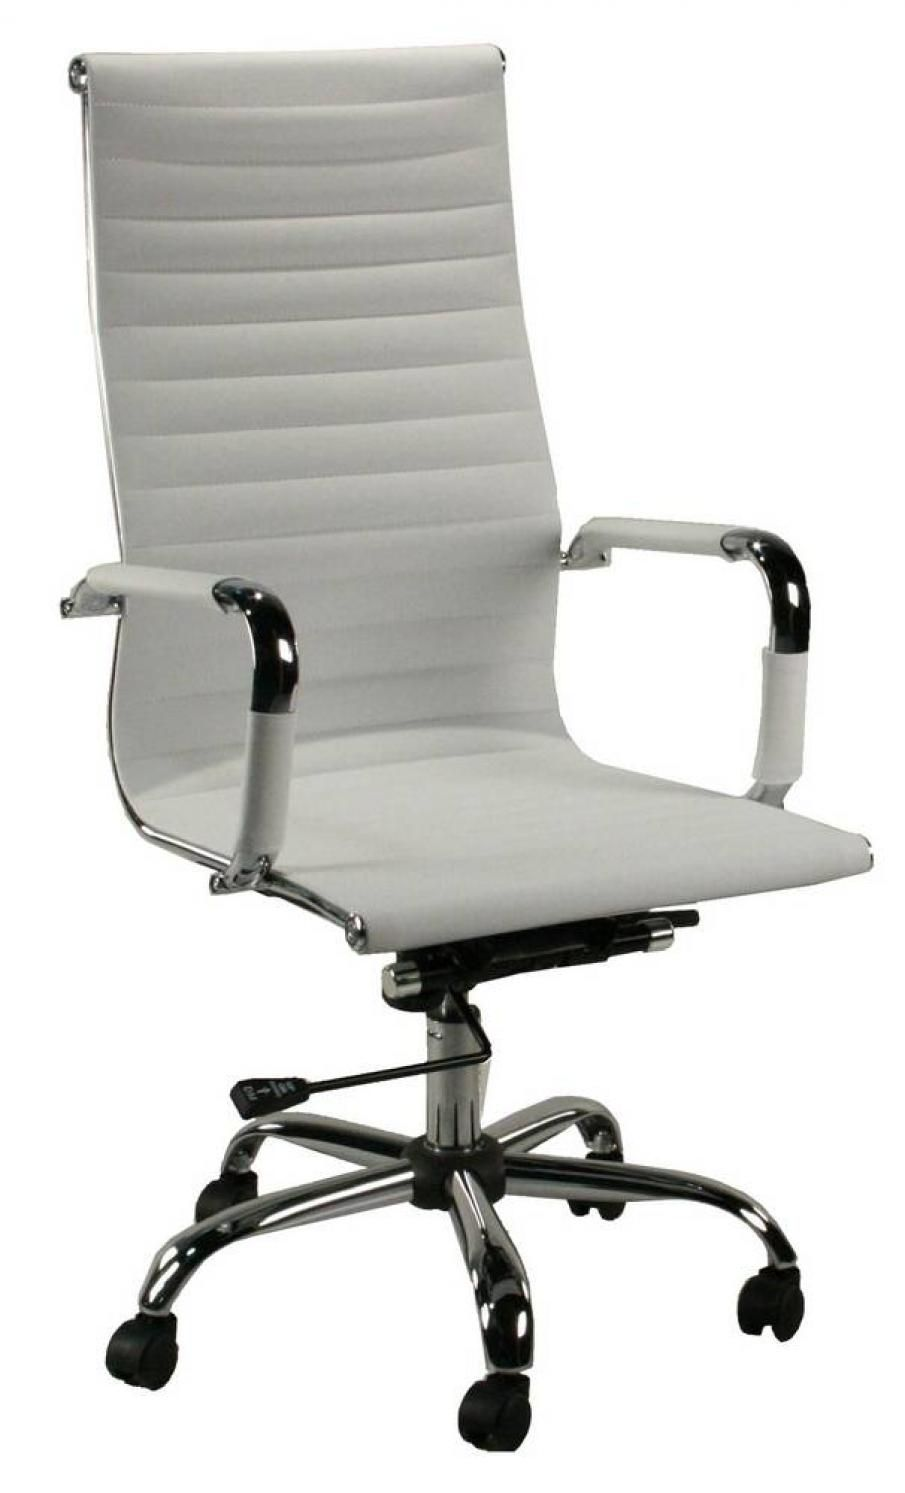 White Contemporary High Back Rolling Office Chair White Office Chair Leather Office Chair Office Chair